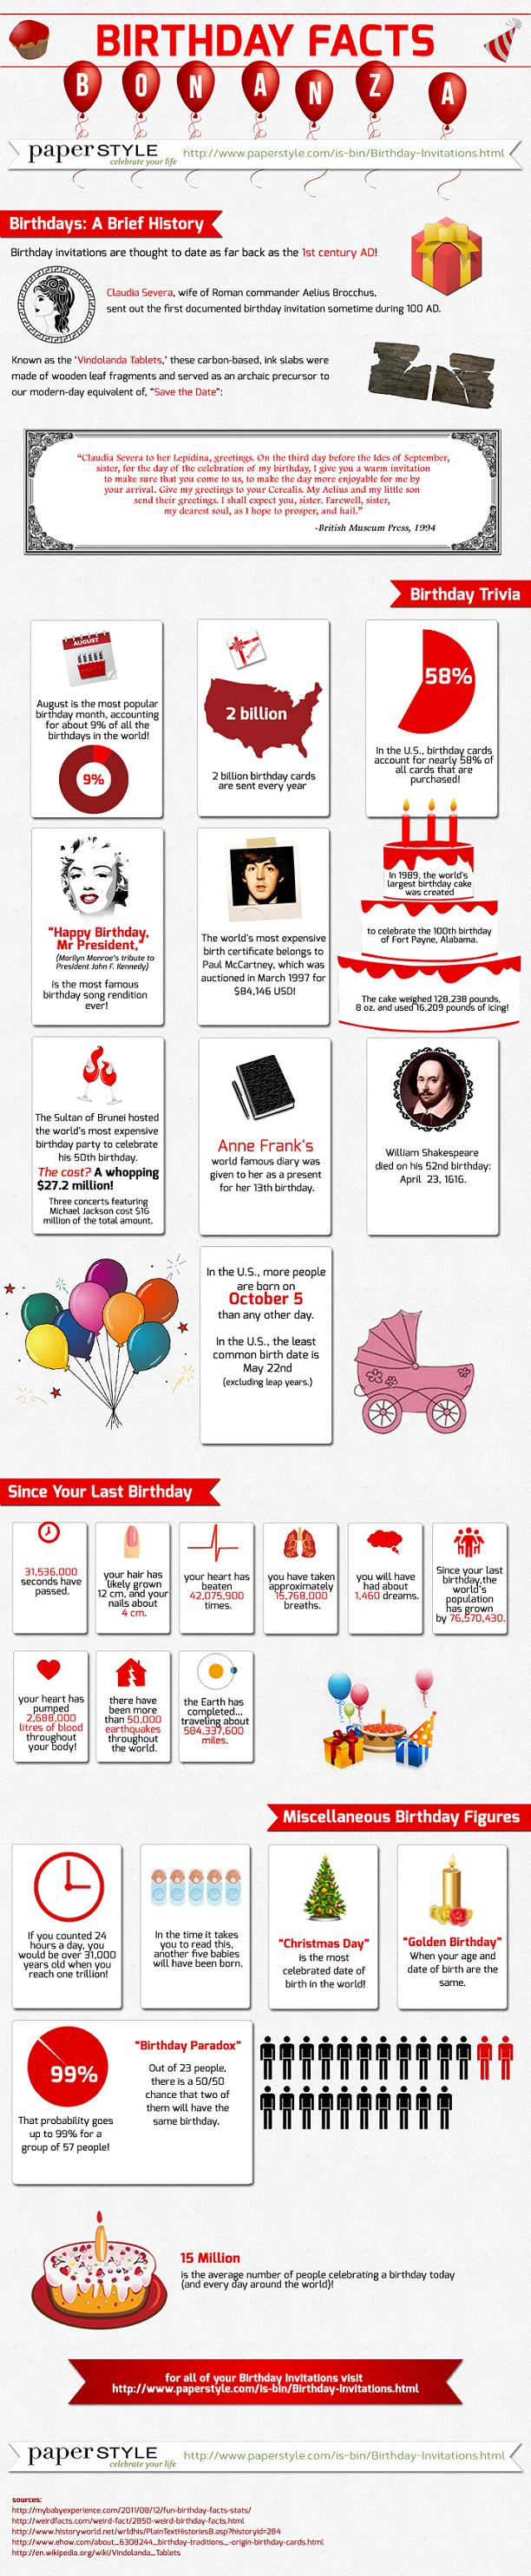 Interesting Birthday Facts